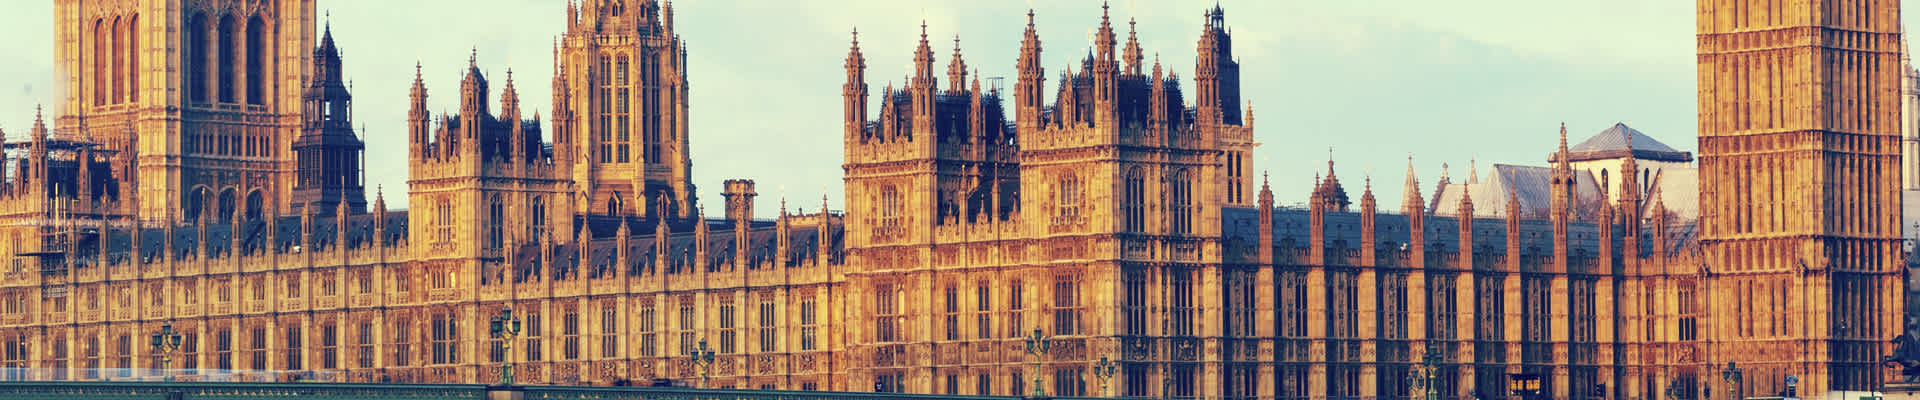 This is an image of the Palace of Westminister